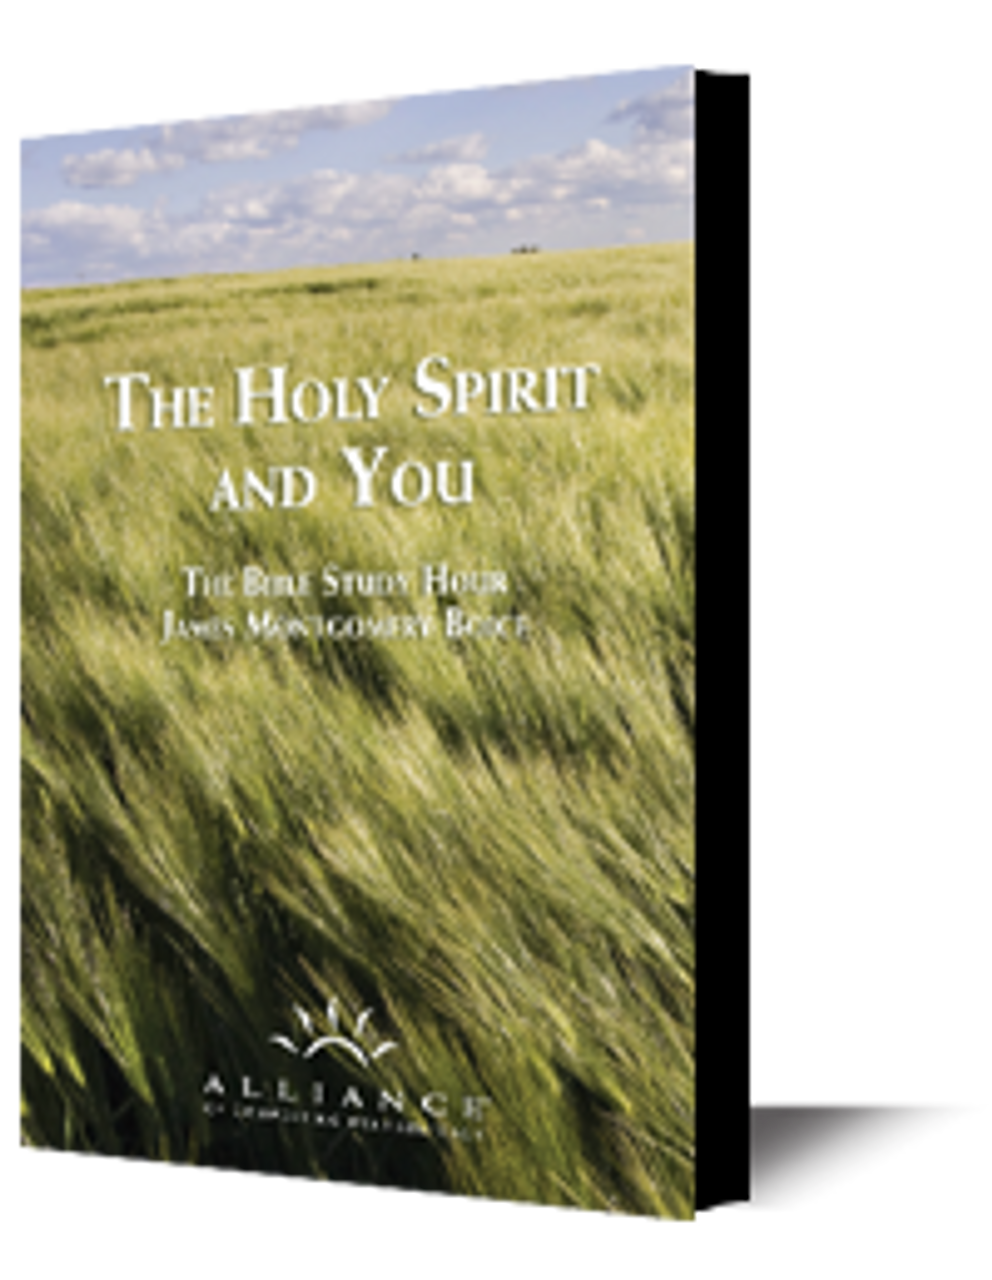 The Holy Spirit and You (DVD Set)